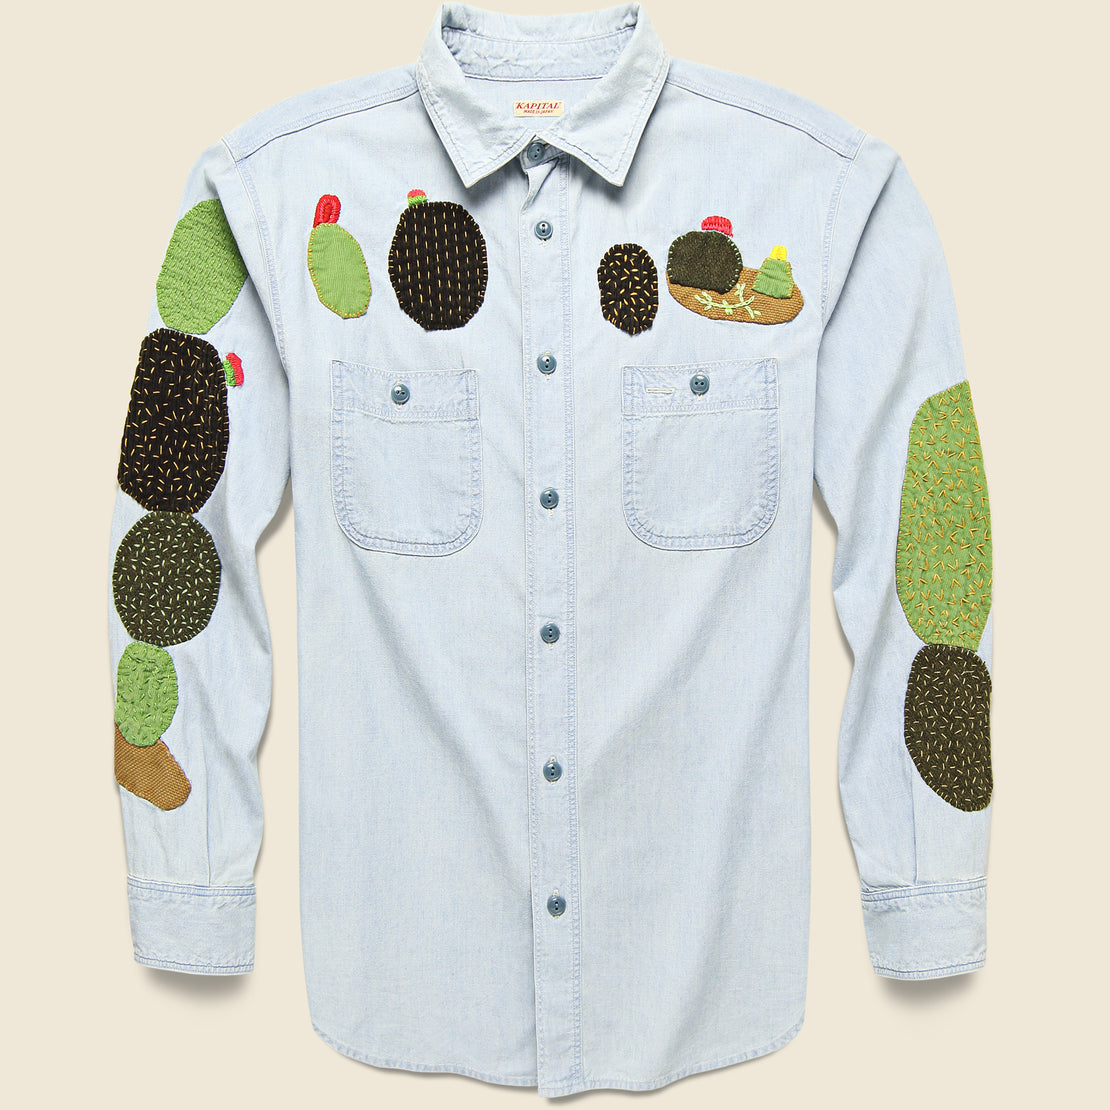 Kapital Chambray Work Shirt with Cactus Embroidery - Indigo